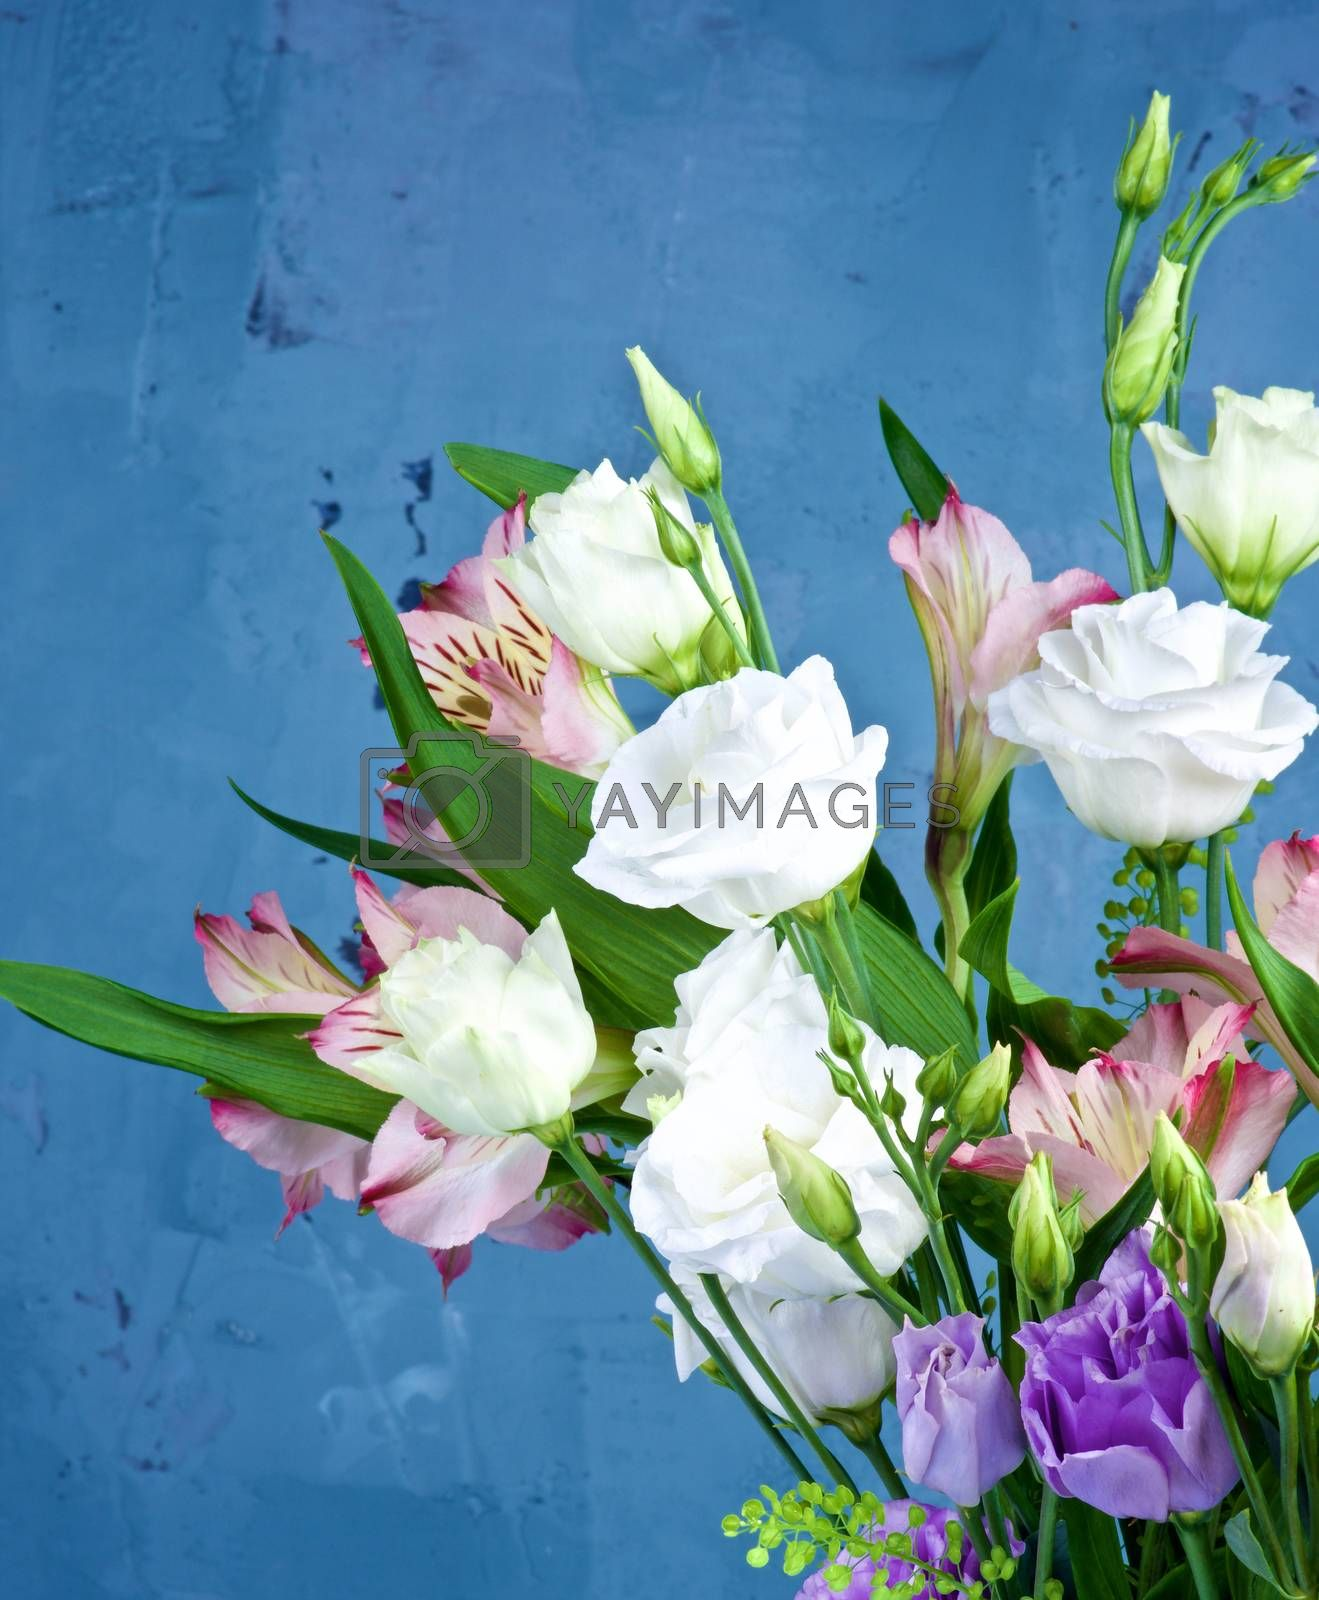 Elegant Flowers Bouquet by zhekos